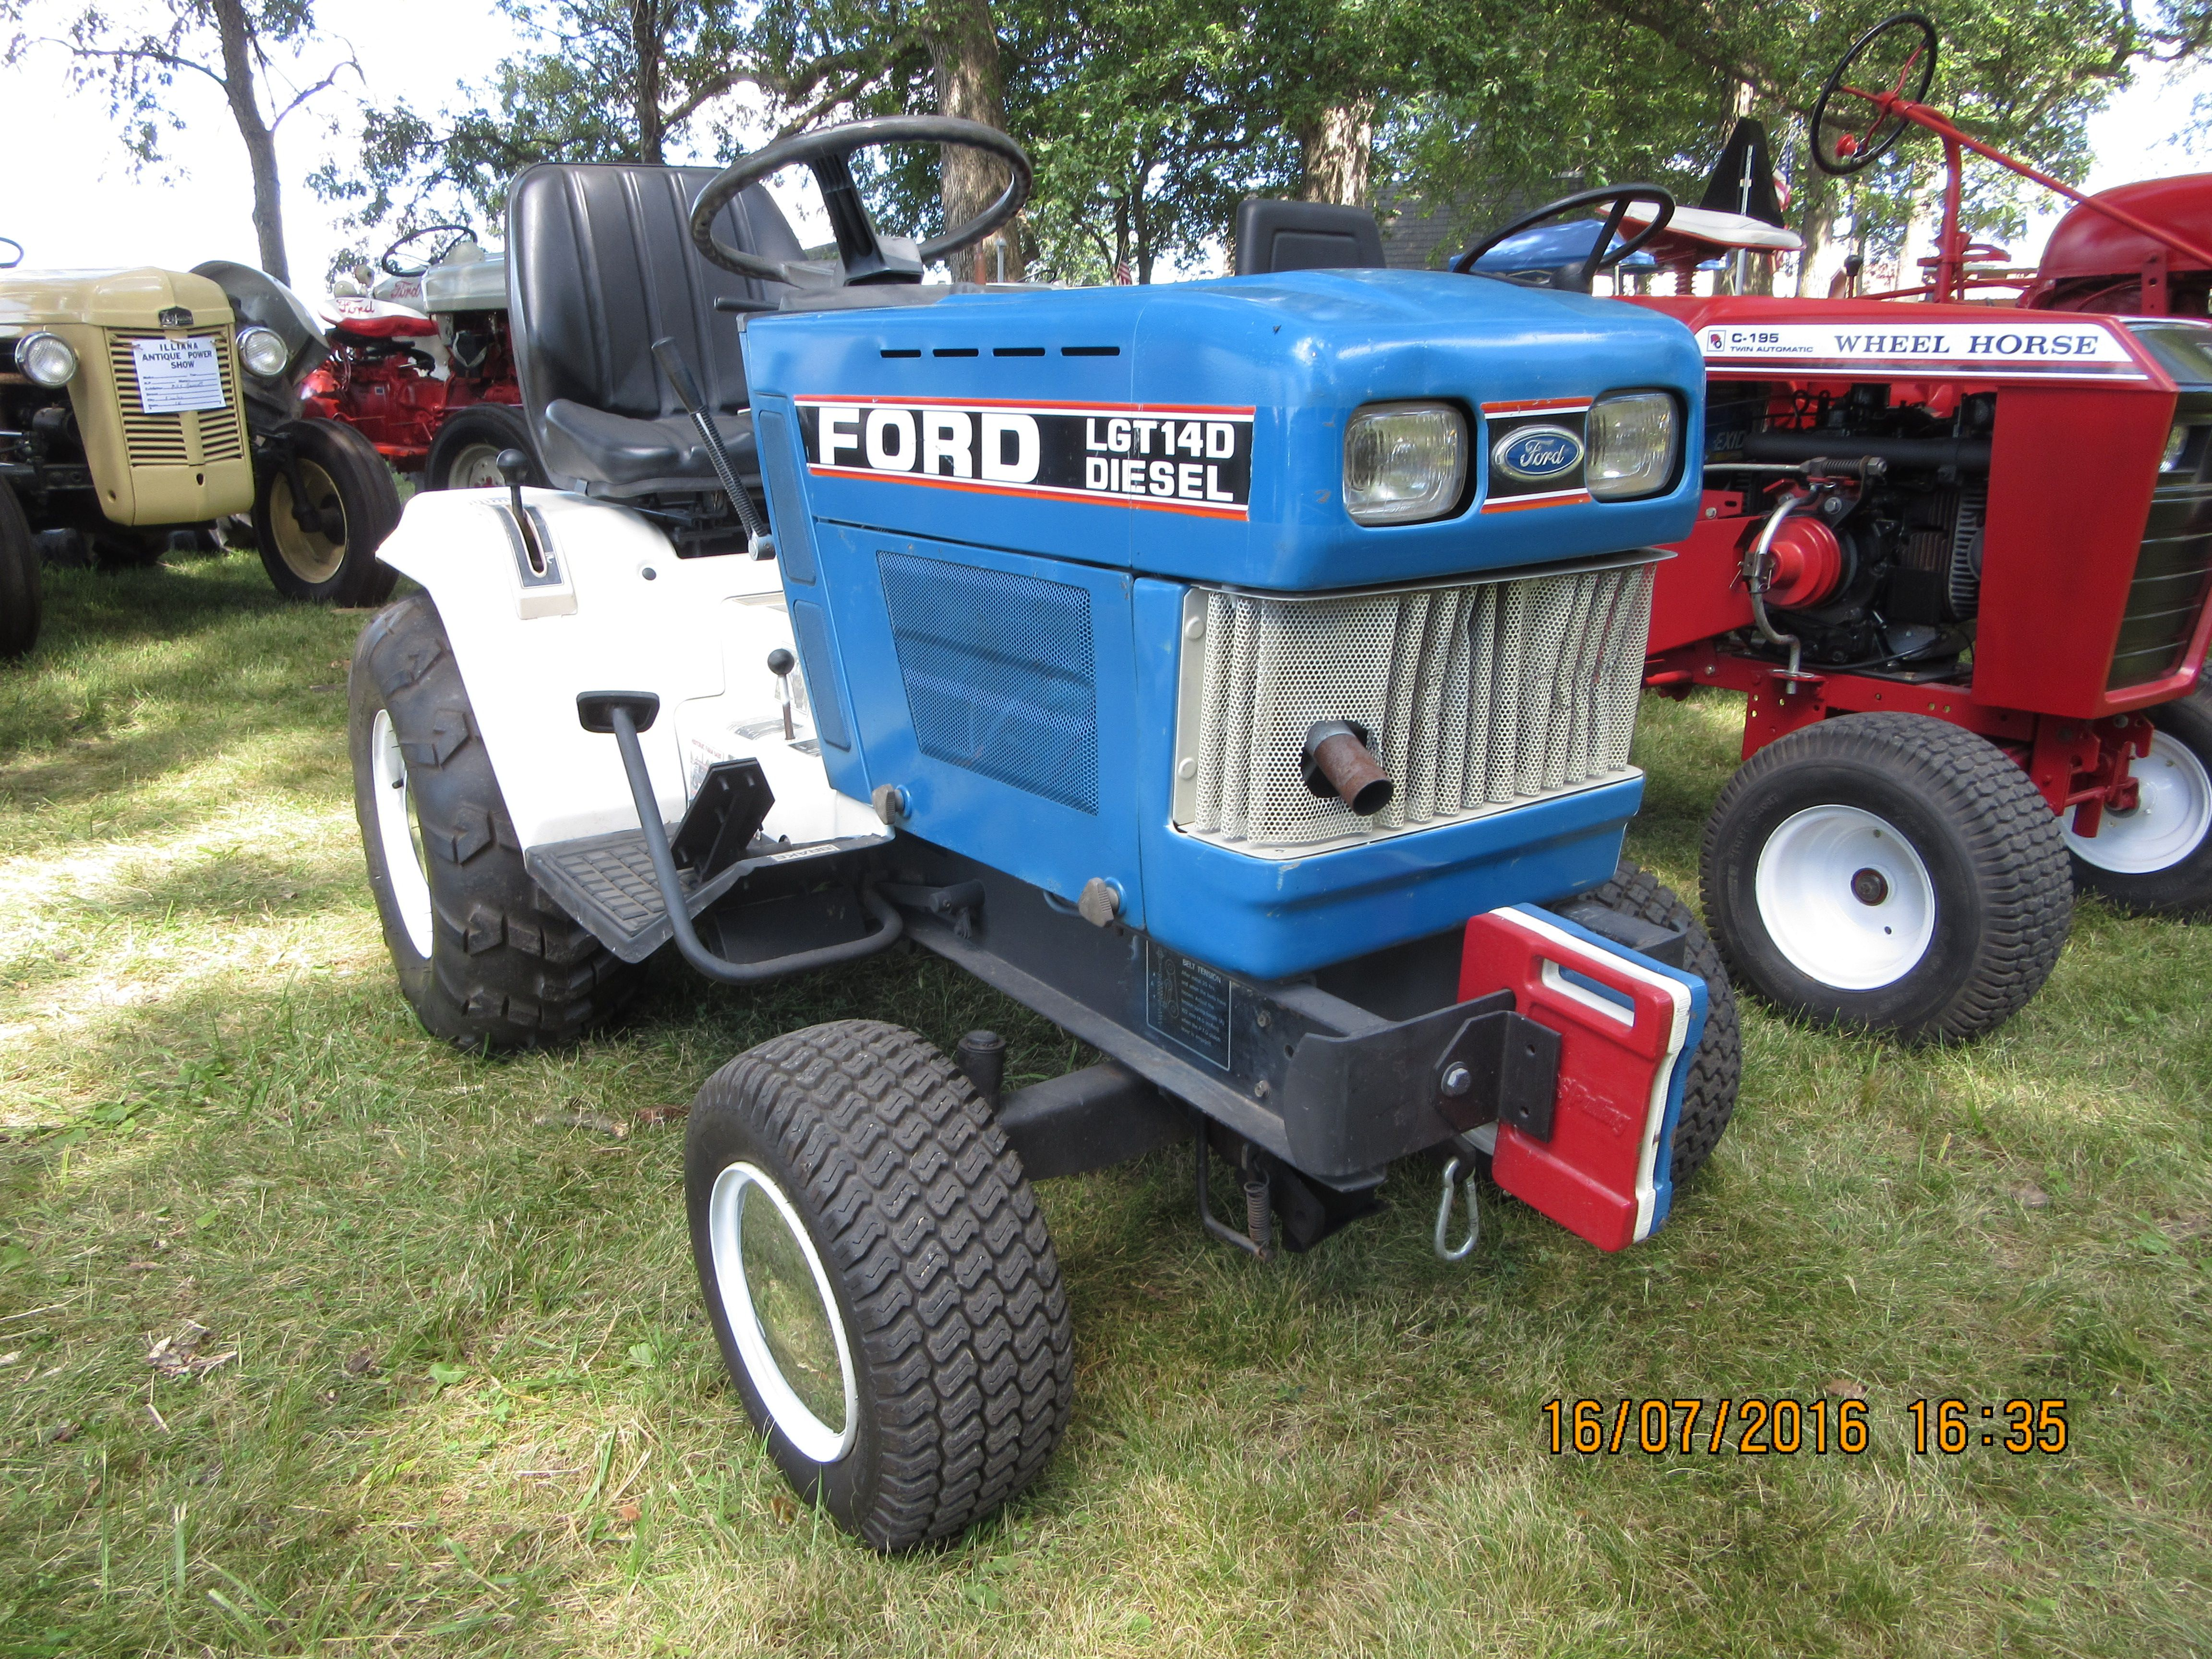 ford lgt 140 tractor [ 4608 x 3456 Pixel ]